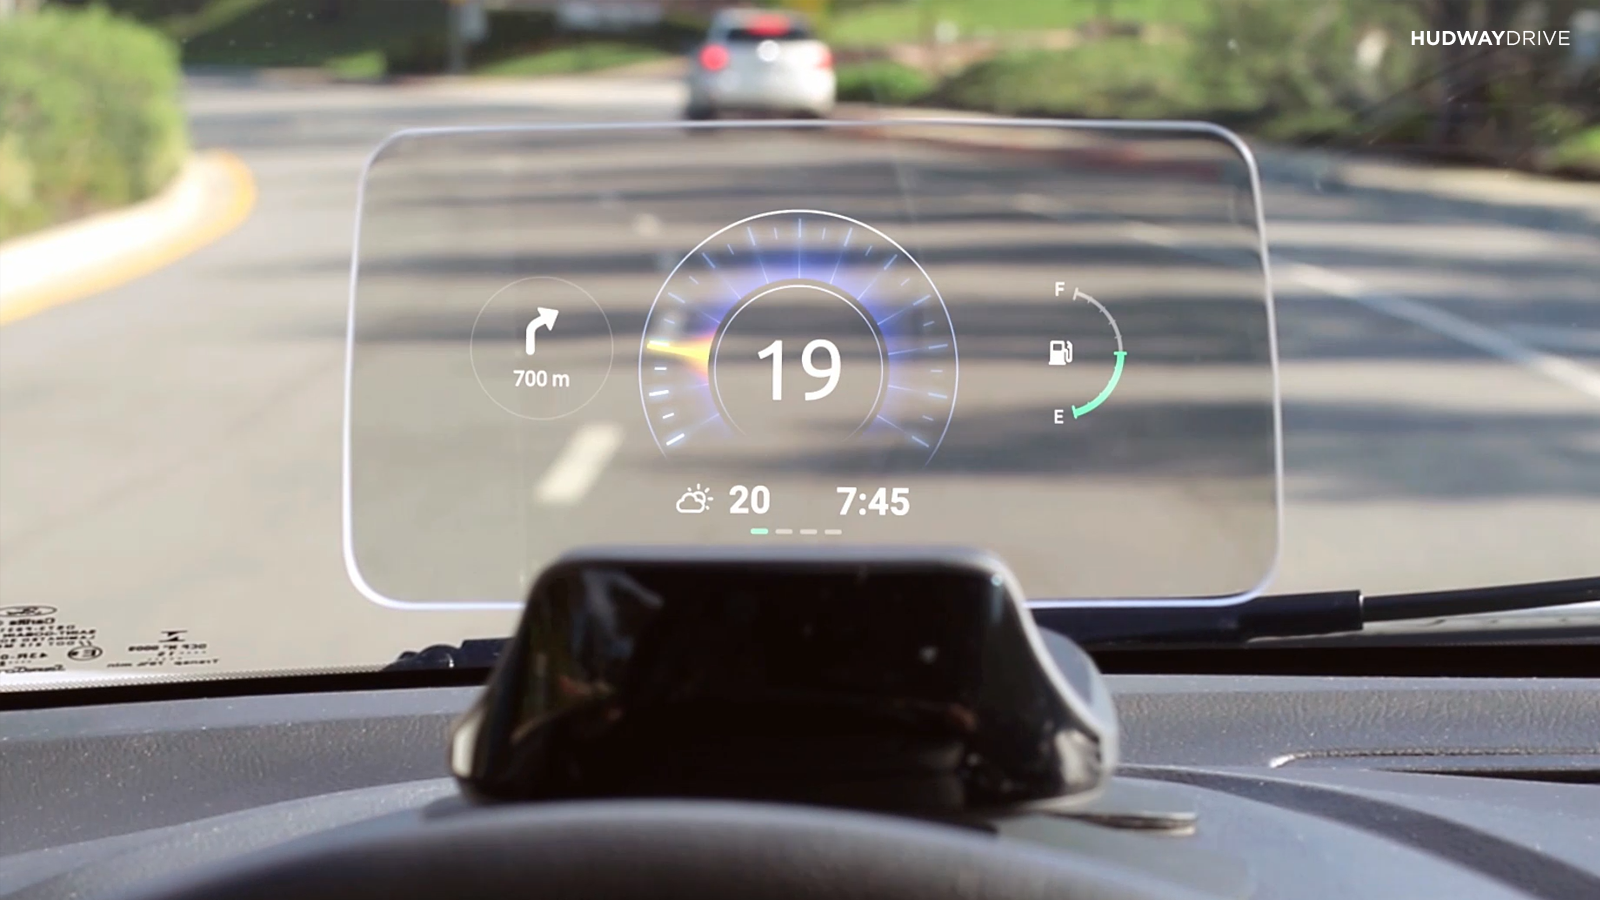 Hudway Drive Hudway Joins The Aftermarket Head Up Display Market Competition